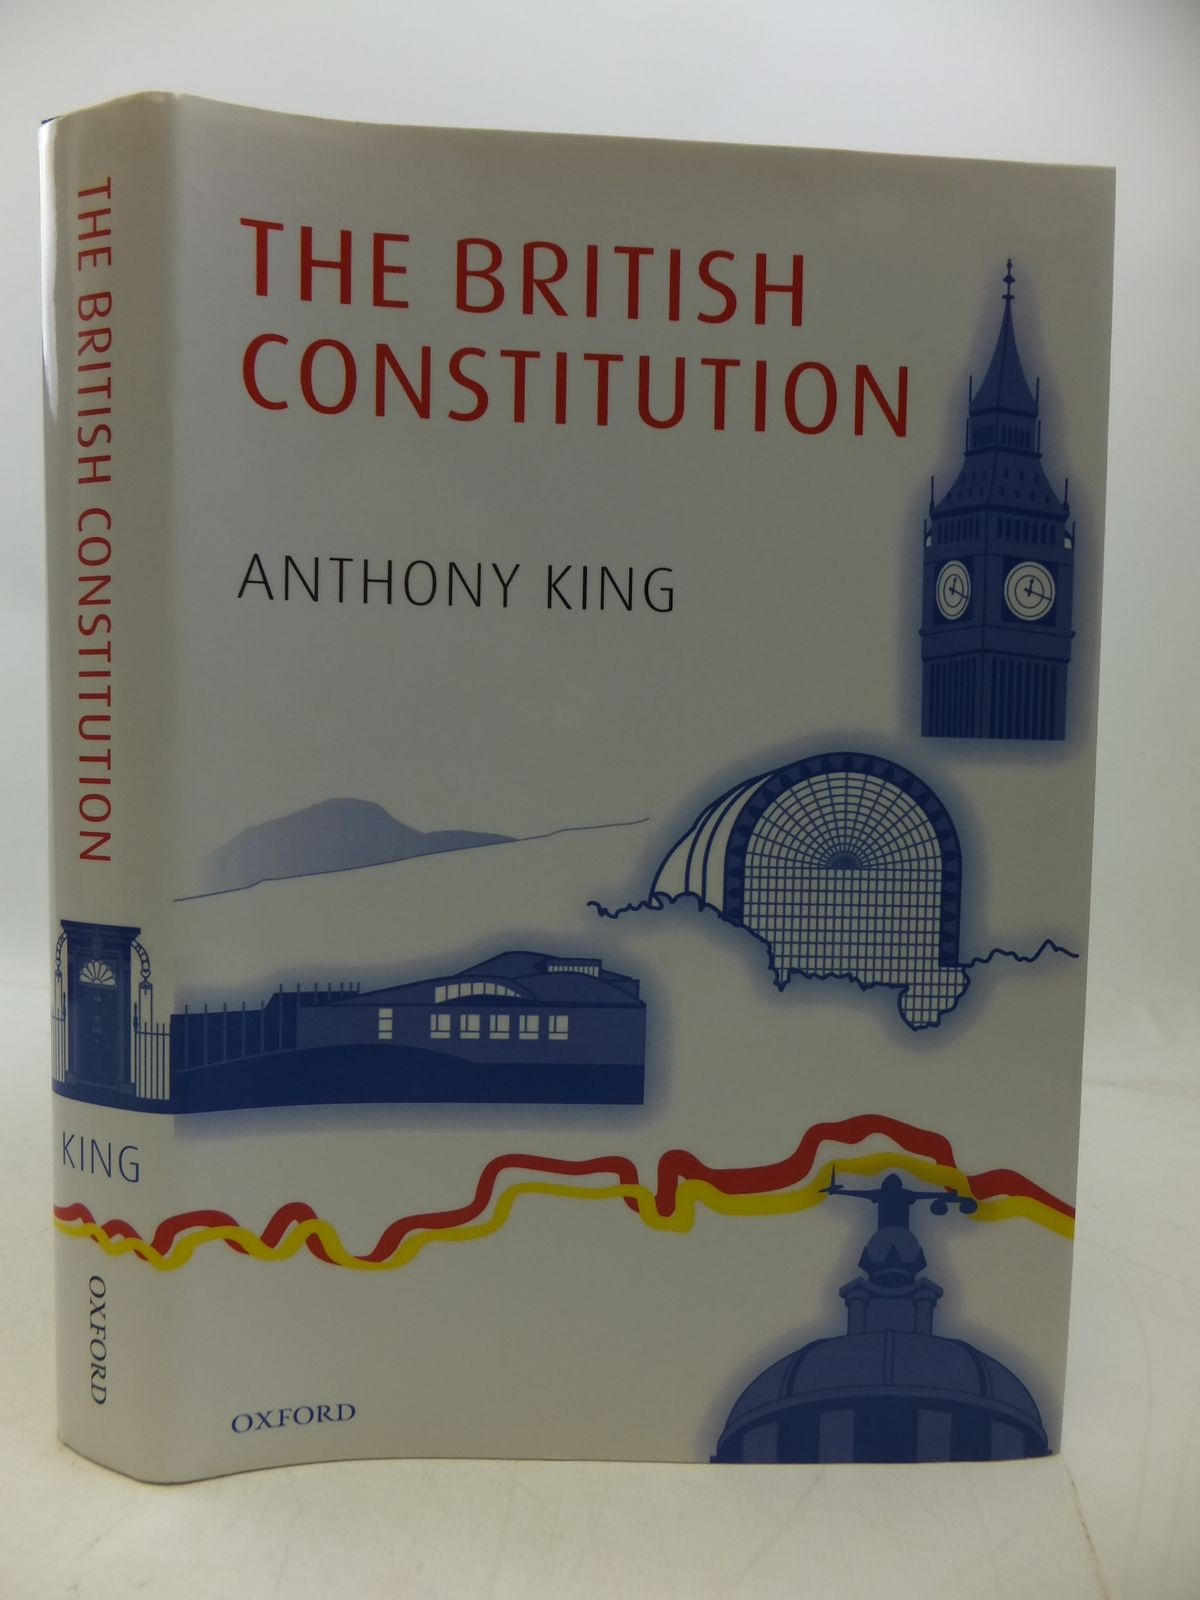 british constitution A constitution is a set of laws on how a country is governed the british constitution is unwritten in one single document, unlike the constitution in america or the proposed european constitution, and as such, is referred to as an uncodified constitution in the sense that there is no single document that can be classed as britain's constitution.